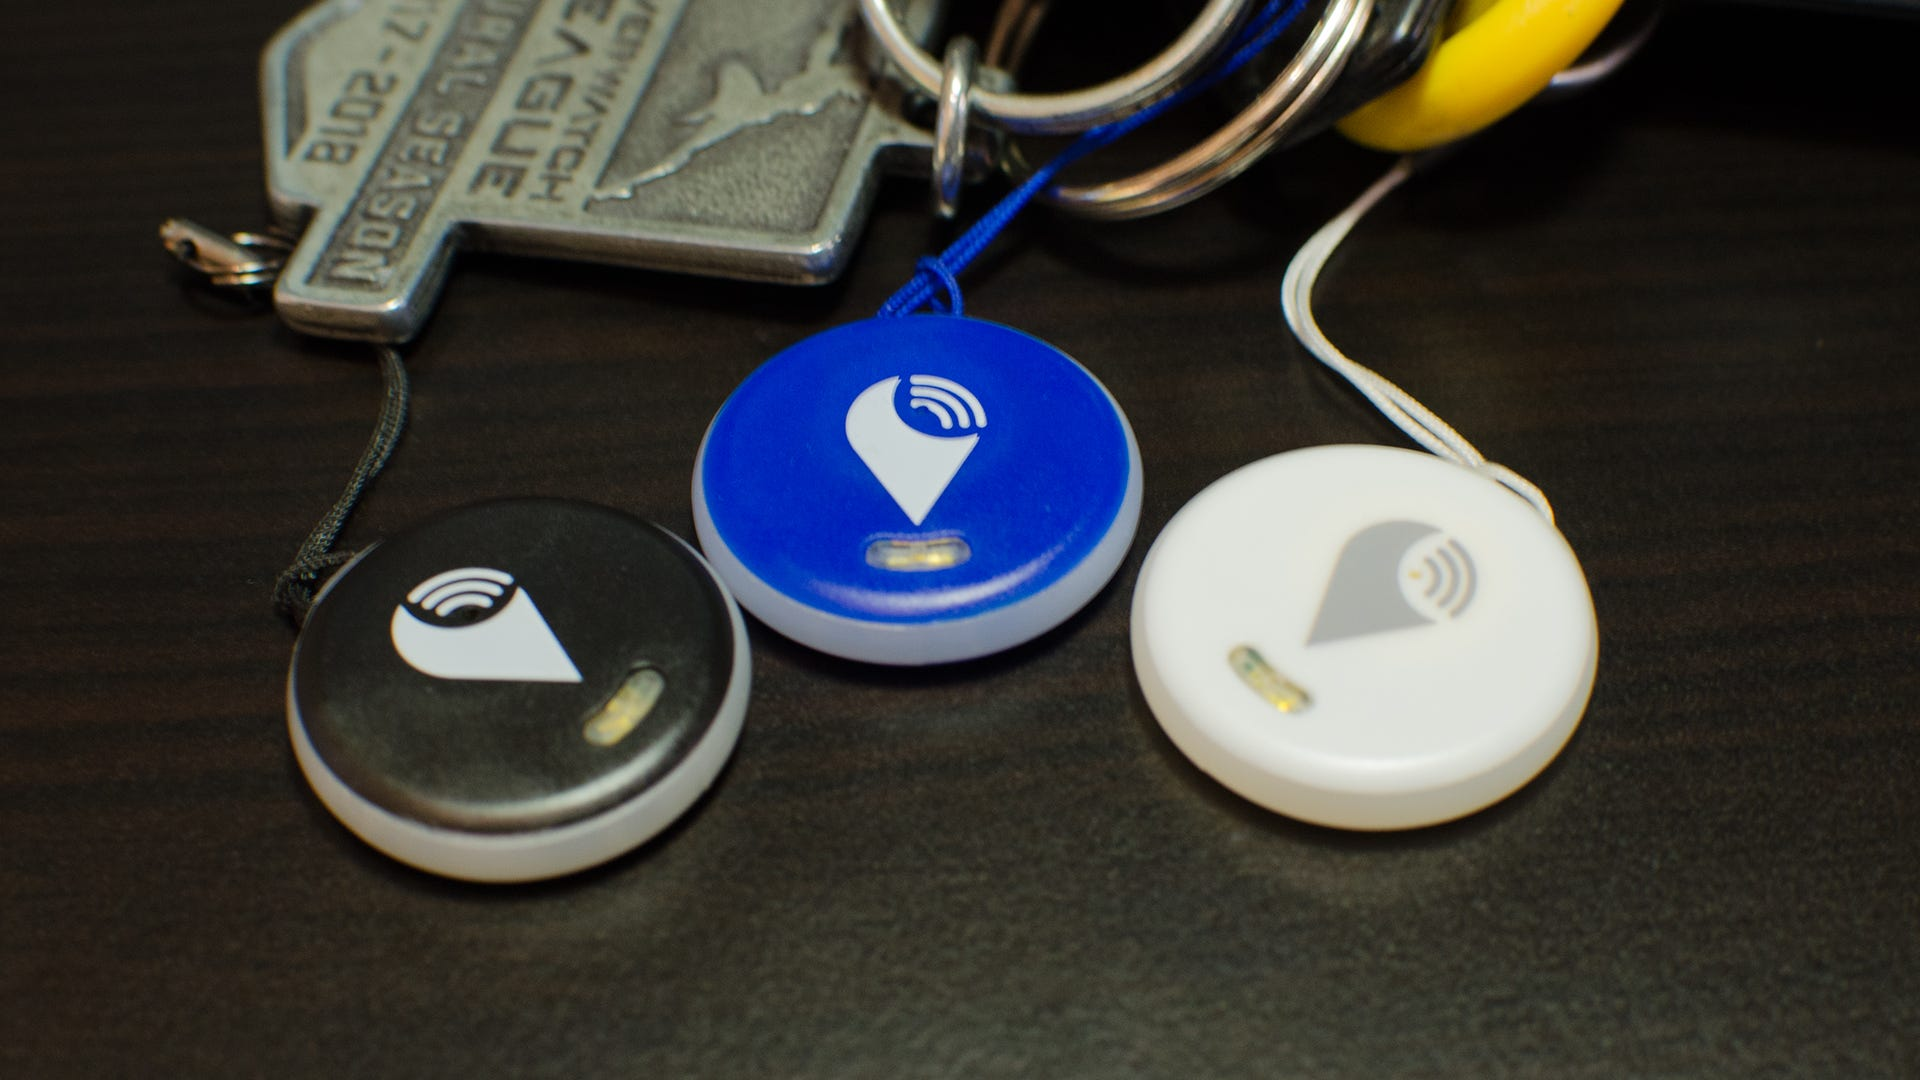 TrackR Pixel Review: Useful Enough to Justify the Frustrations